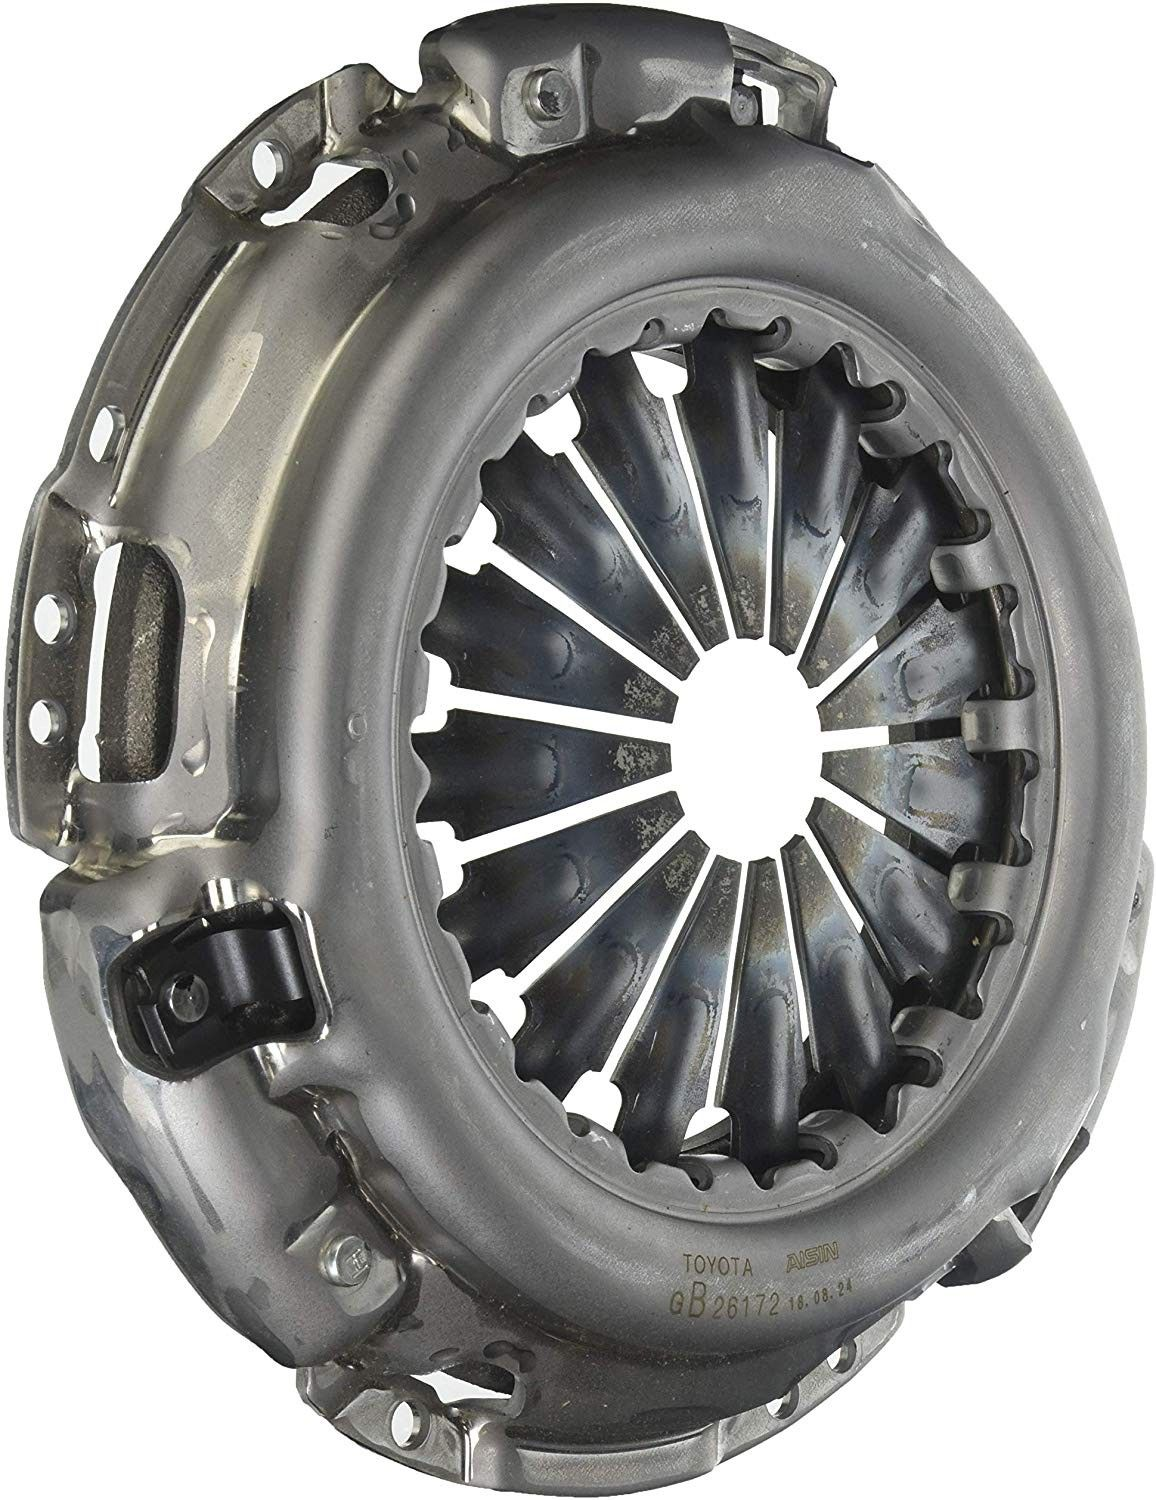 Luk Clutch Pressure Plate For Mahindra Loadking 9.2mm thickness 240 - 1240342100